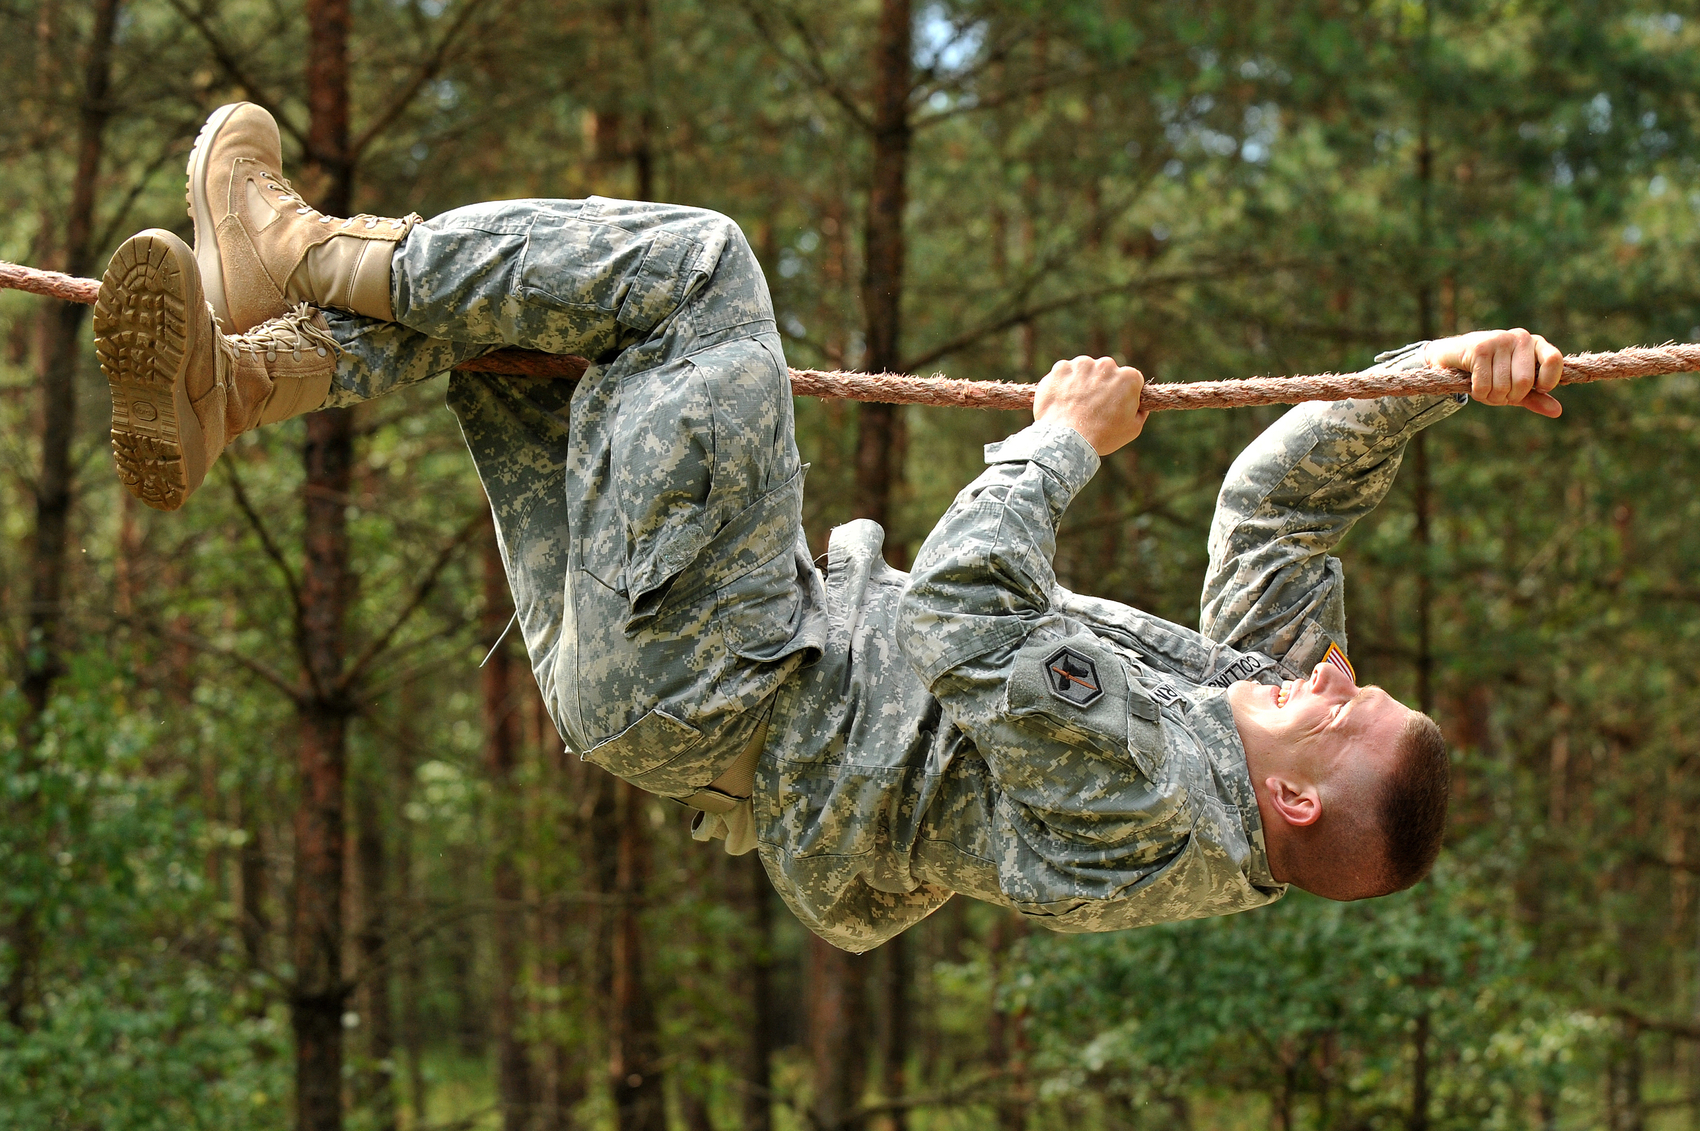 U.S. Army Sgt. Timothy Collins, 66th Military Intelligence Brigade, goes across the rope bridge at the obstacle course during United States Army Europe's Best Warrior Competition in Grafenwoehr, Germany, July 30, 2012. Image from  Wikimedia Commons  (U.S. Army photo by Visual Information Specialist Markus Rauchenberger/Released).